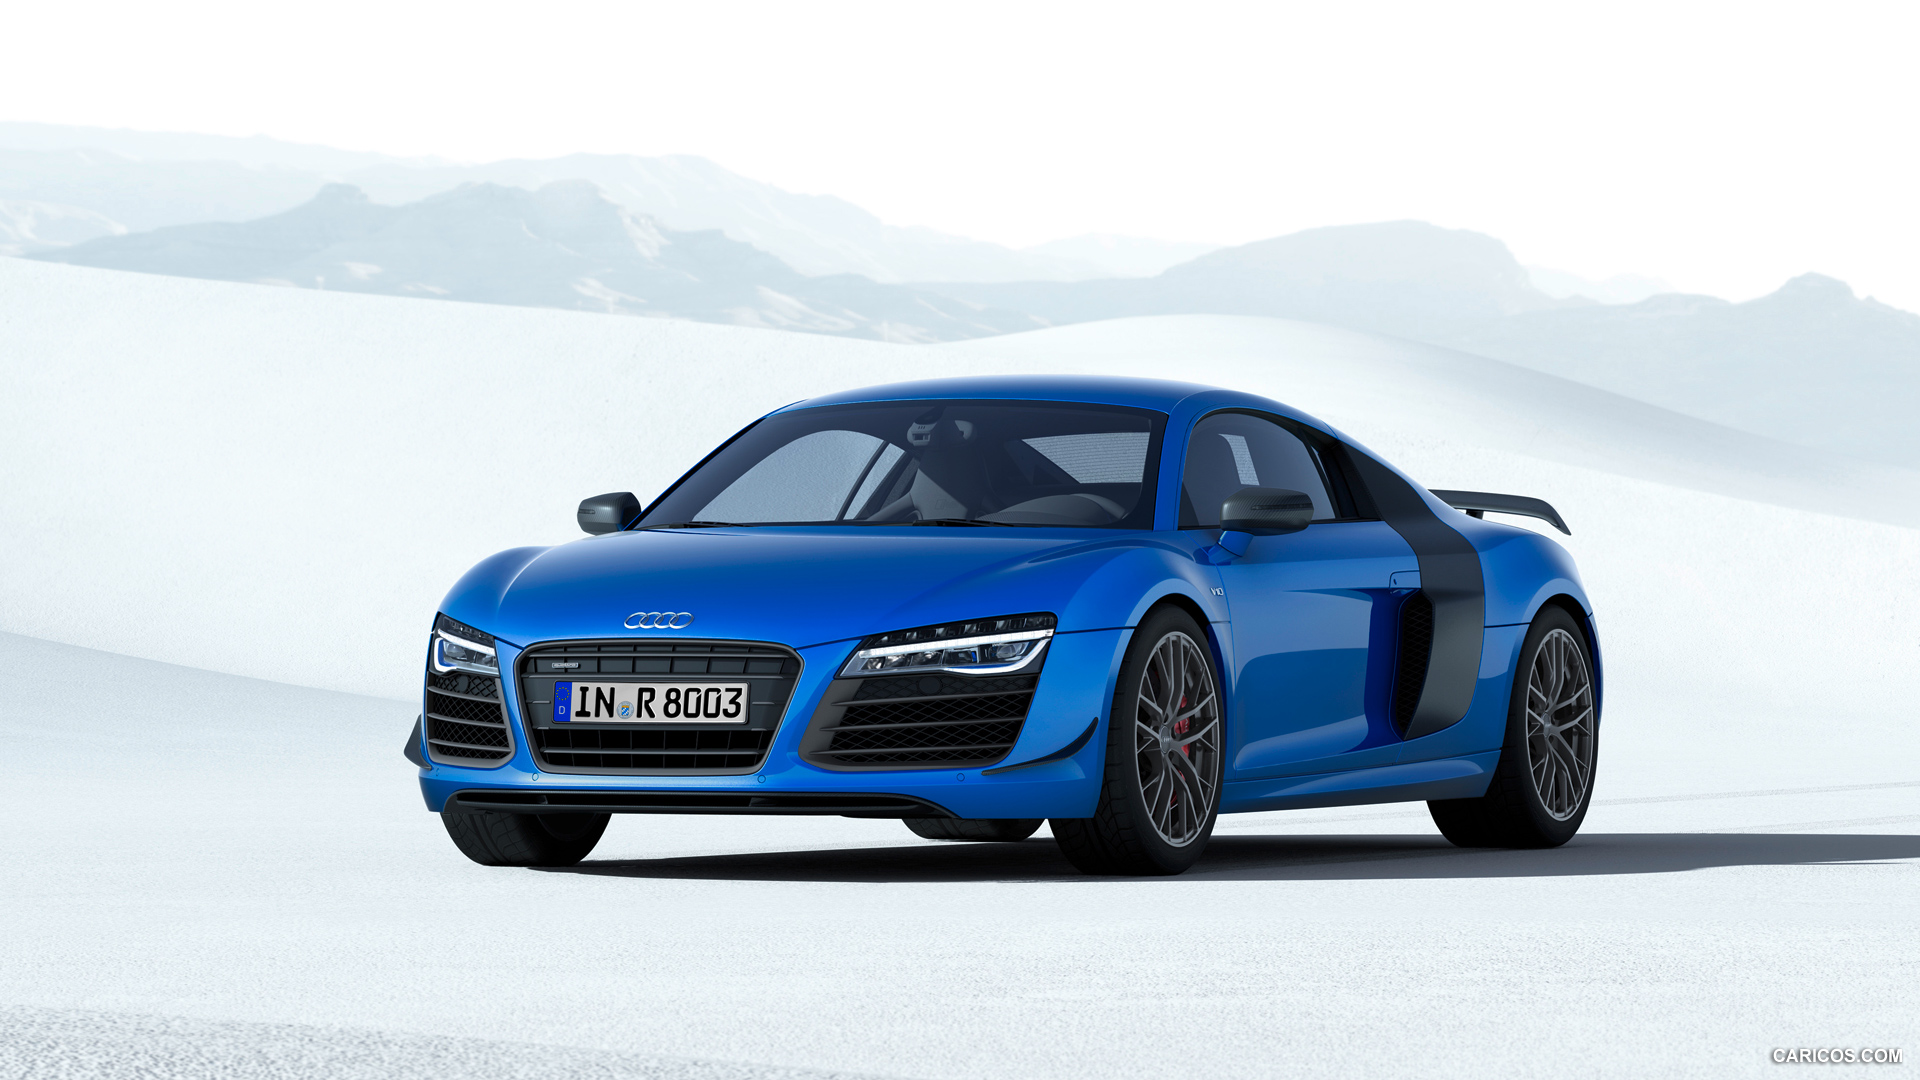 Audi R8 Lmx Photos Photo Gallery Page 2 Carsbase Com